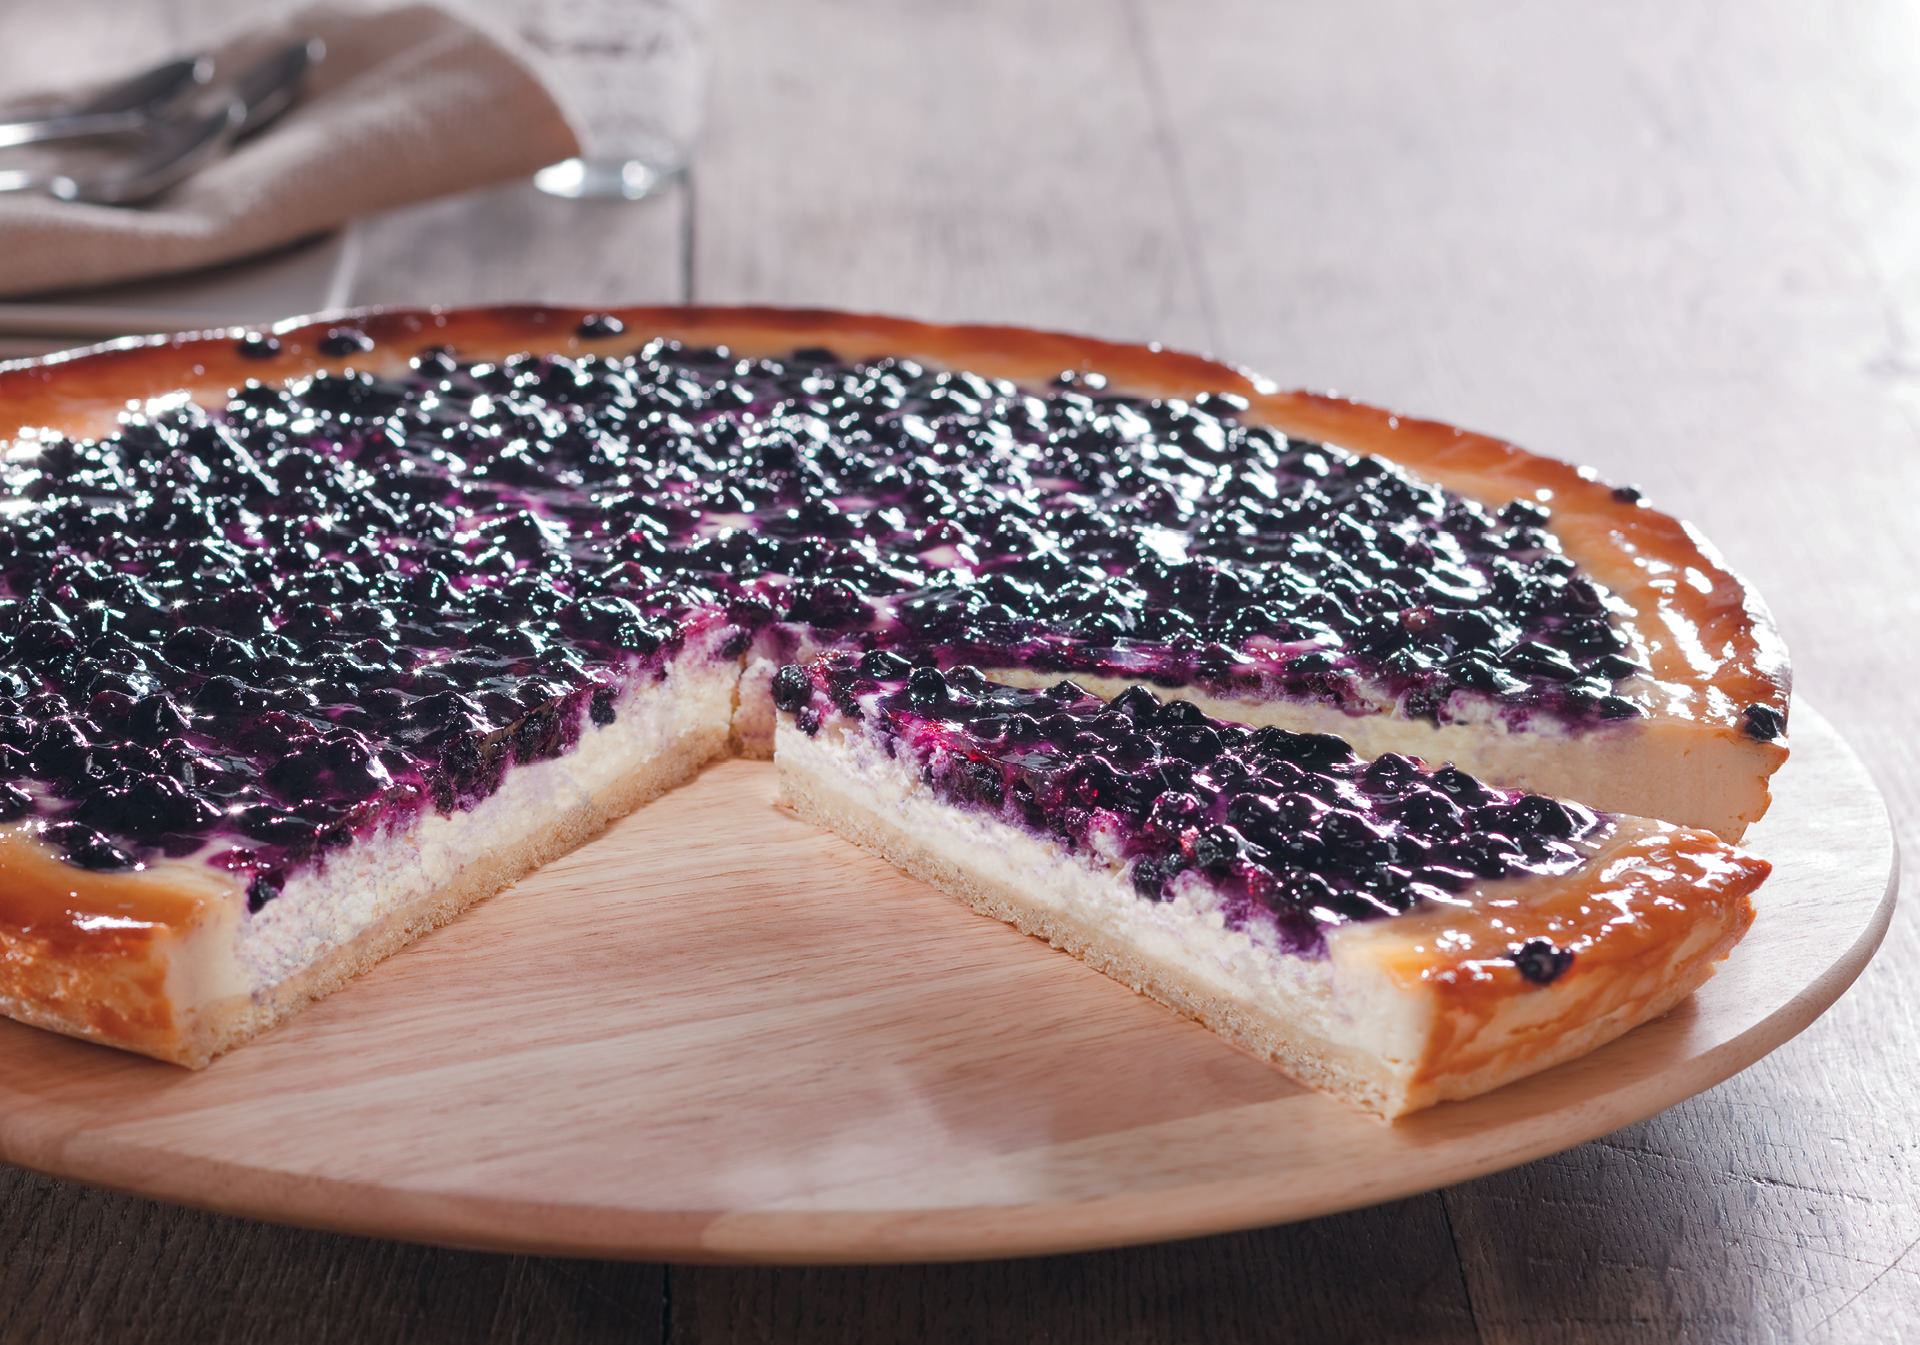 Country-style wild blueberry cake